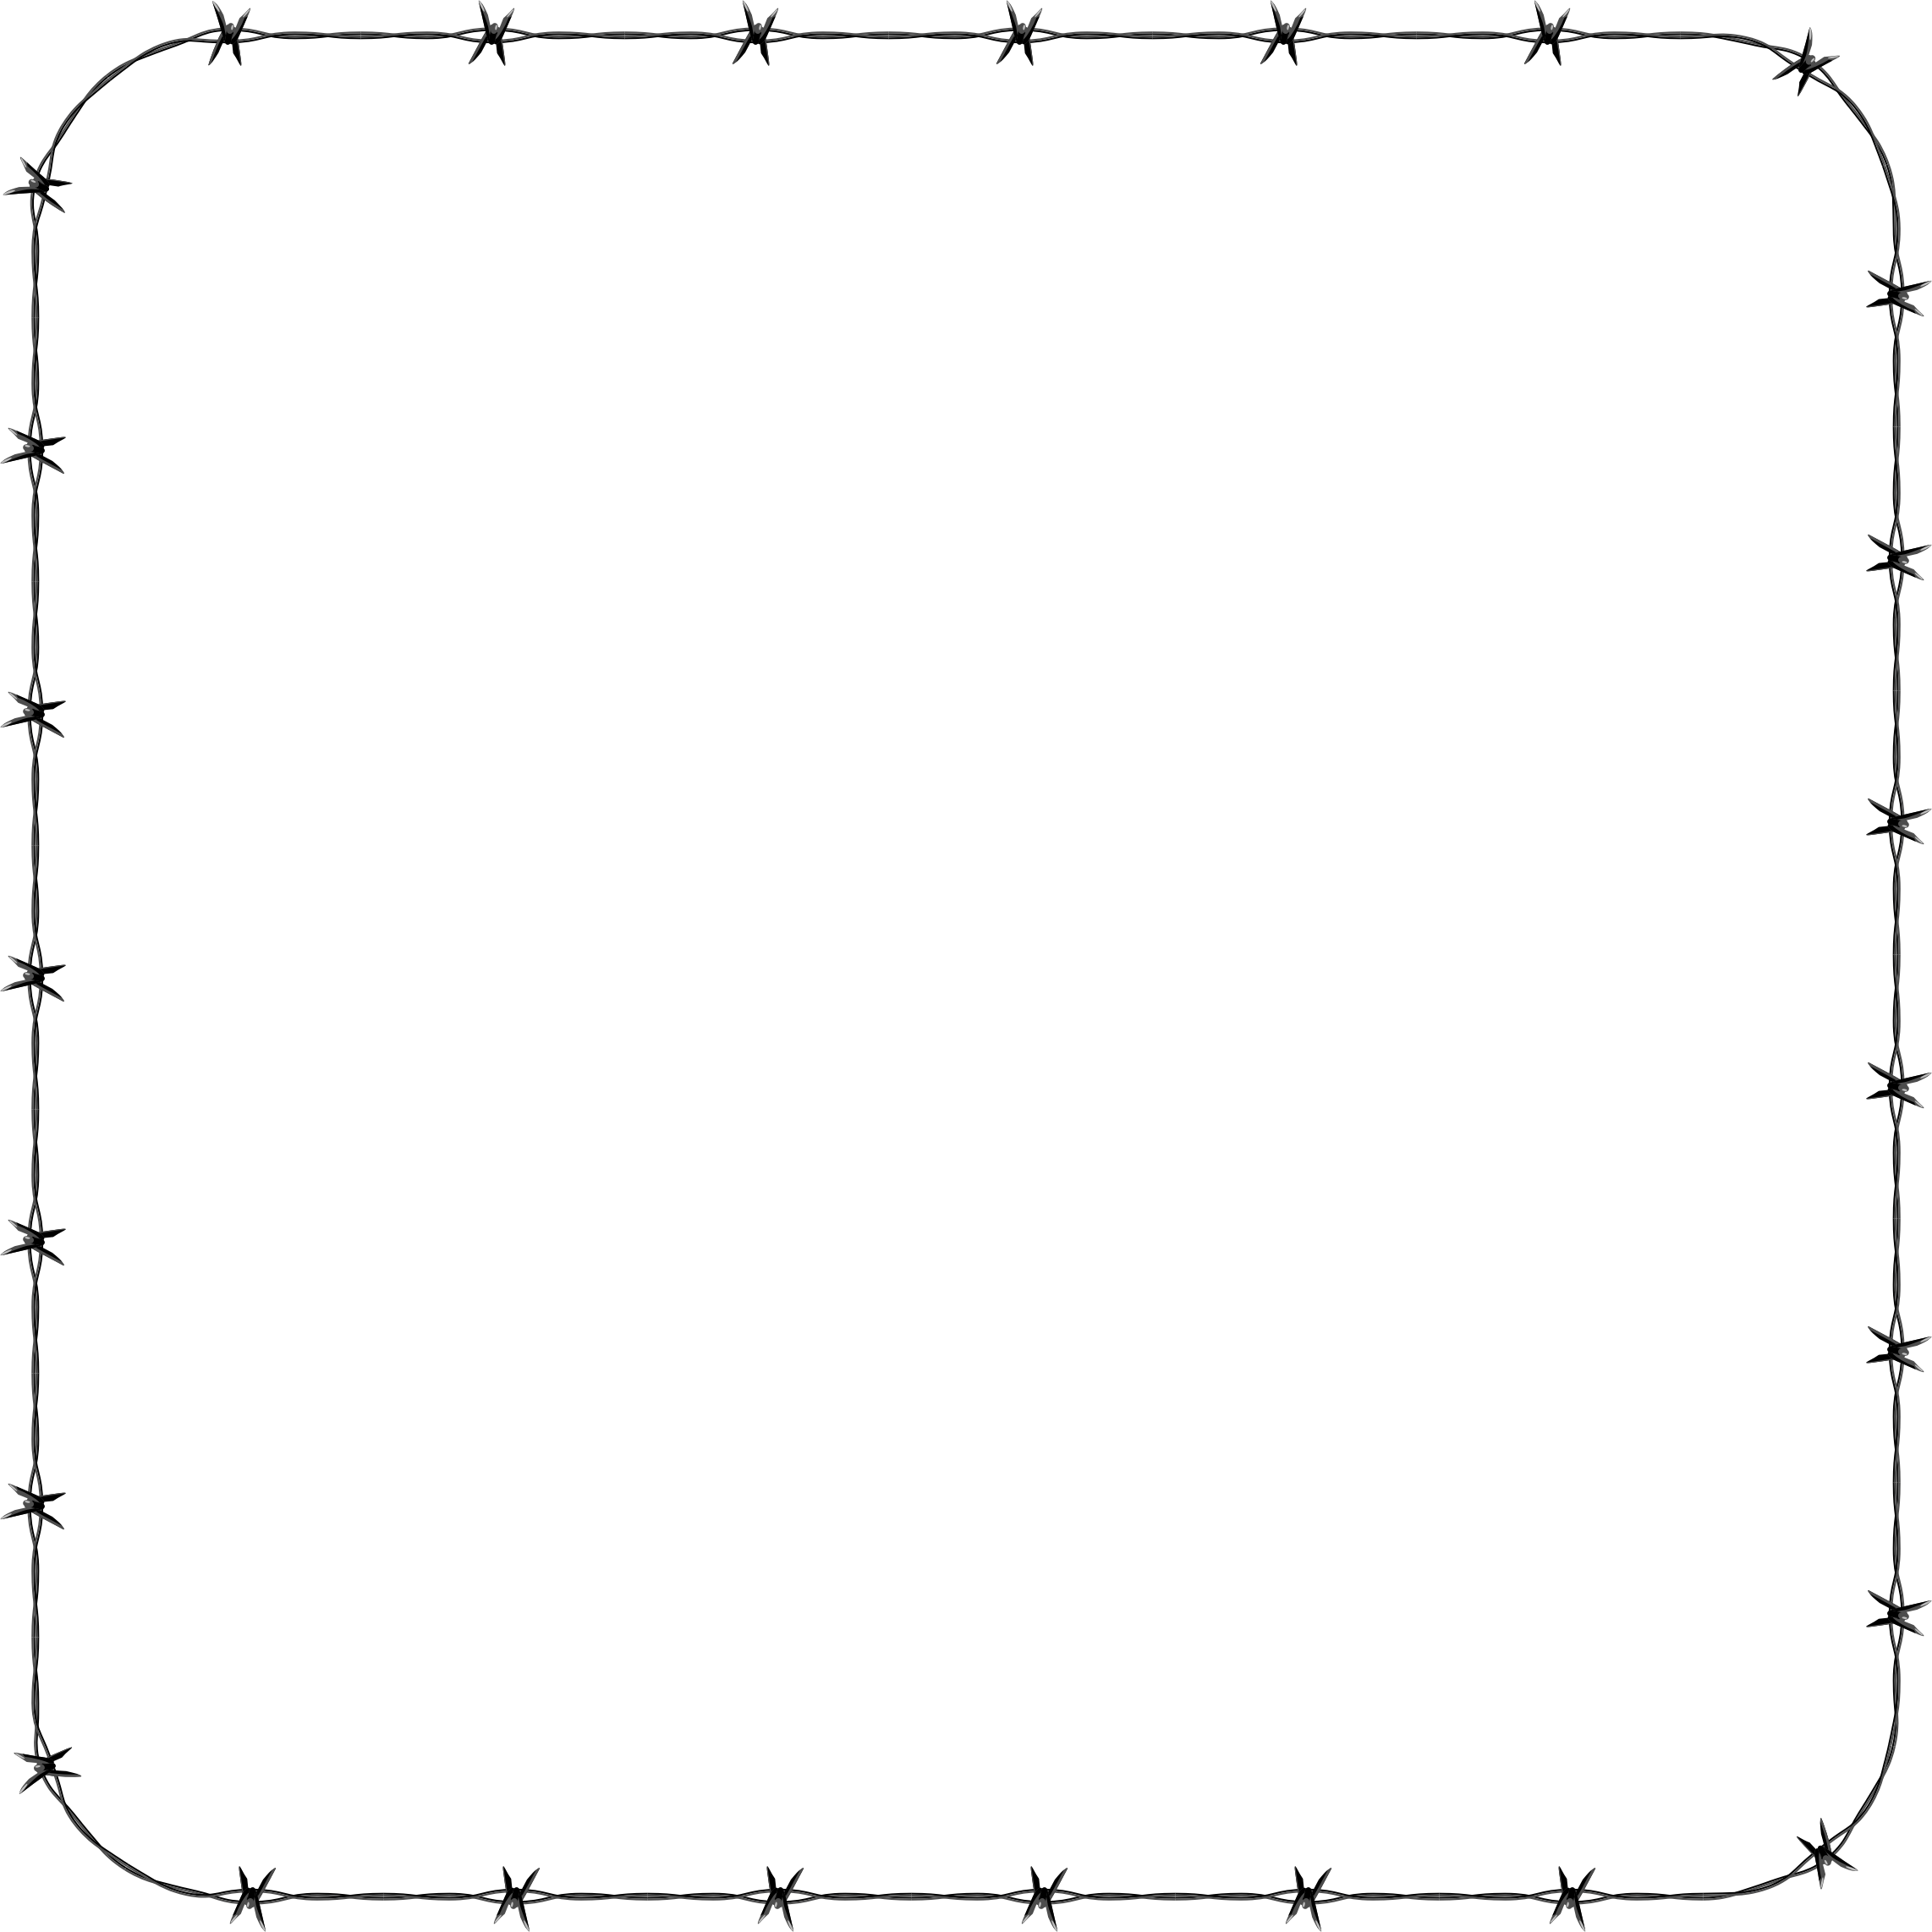 Rounded square frame icons. Barbed wire border png clip art freeuse